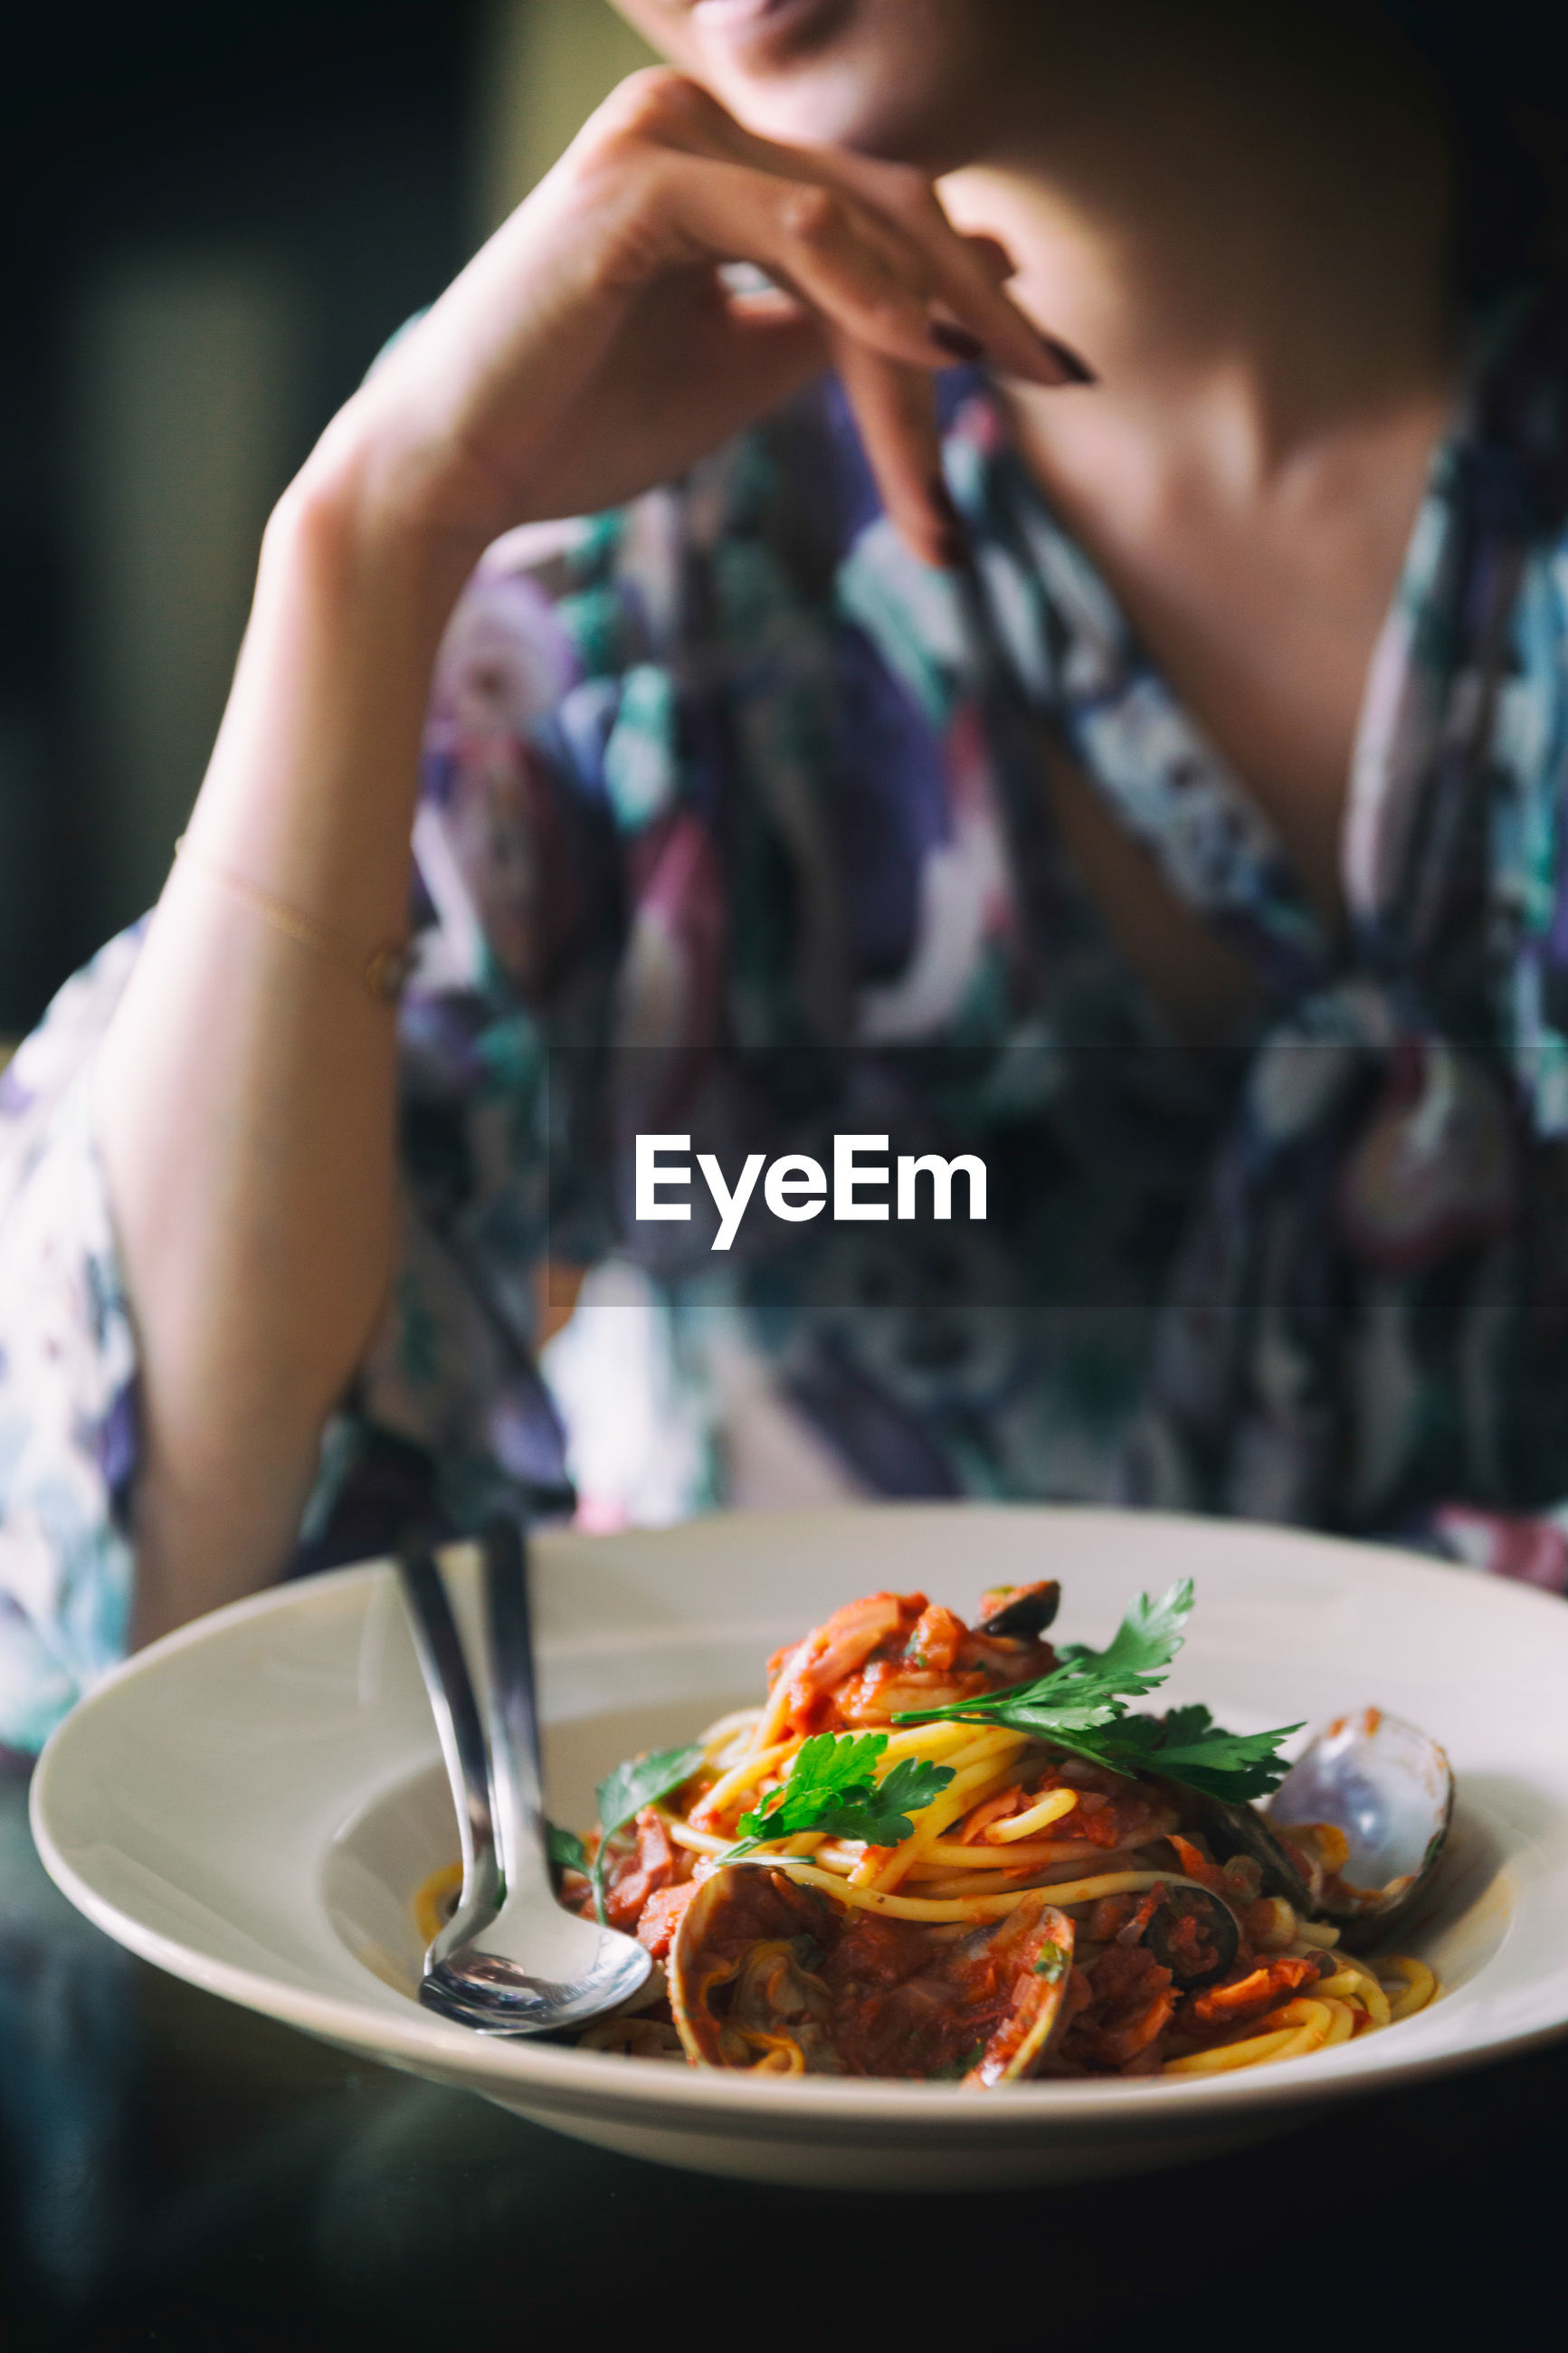 Midsection of woman with meal at table